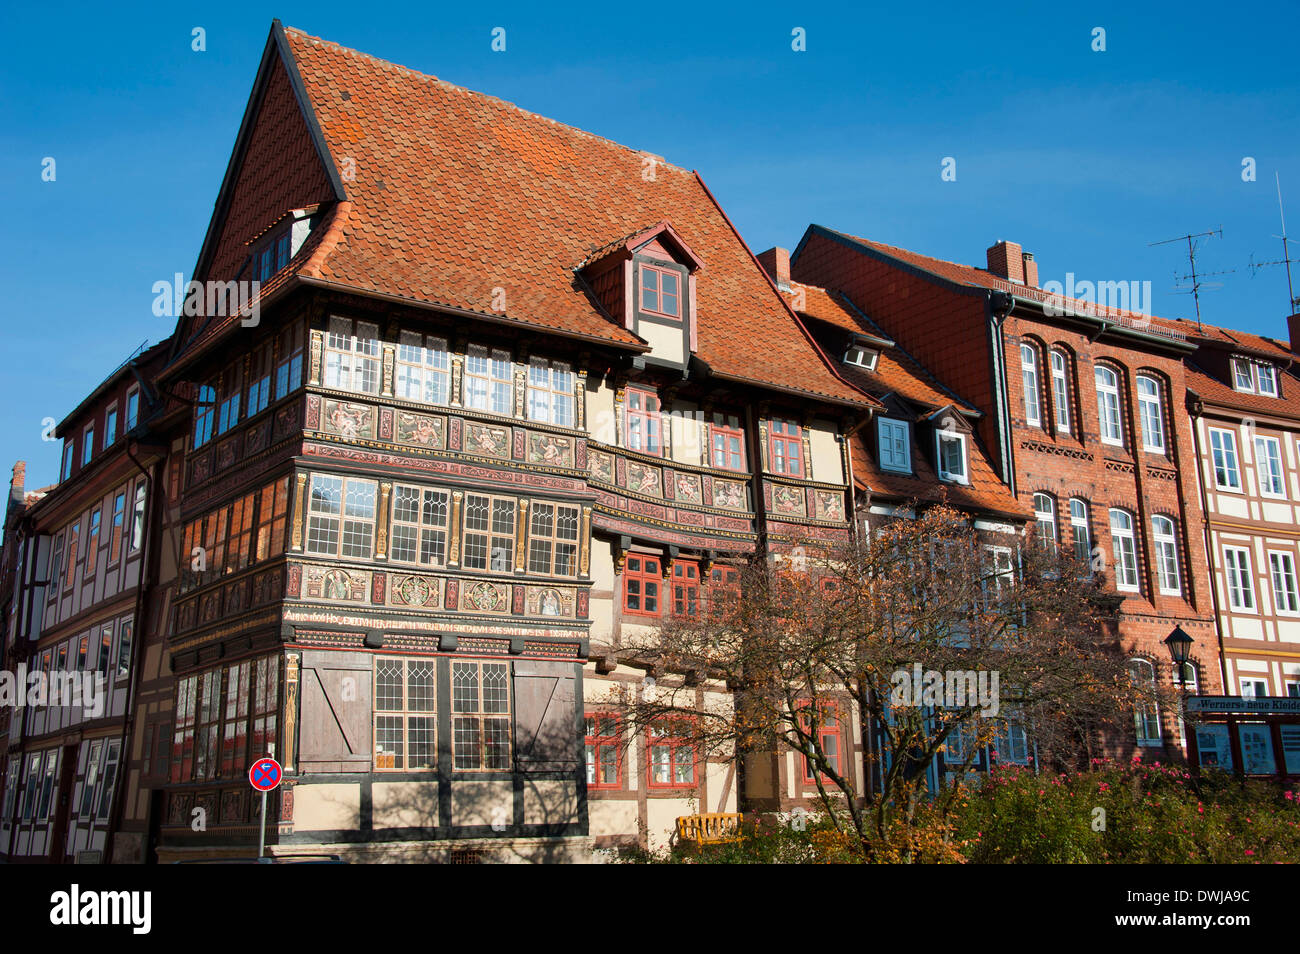 India Haus Hildesheim hildesheim stock photos hildesheim stock images alamy